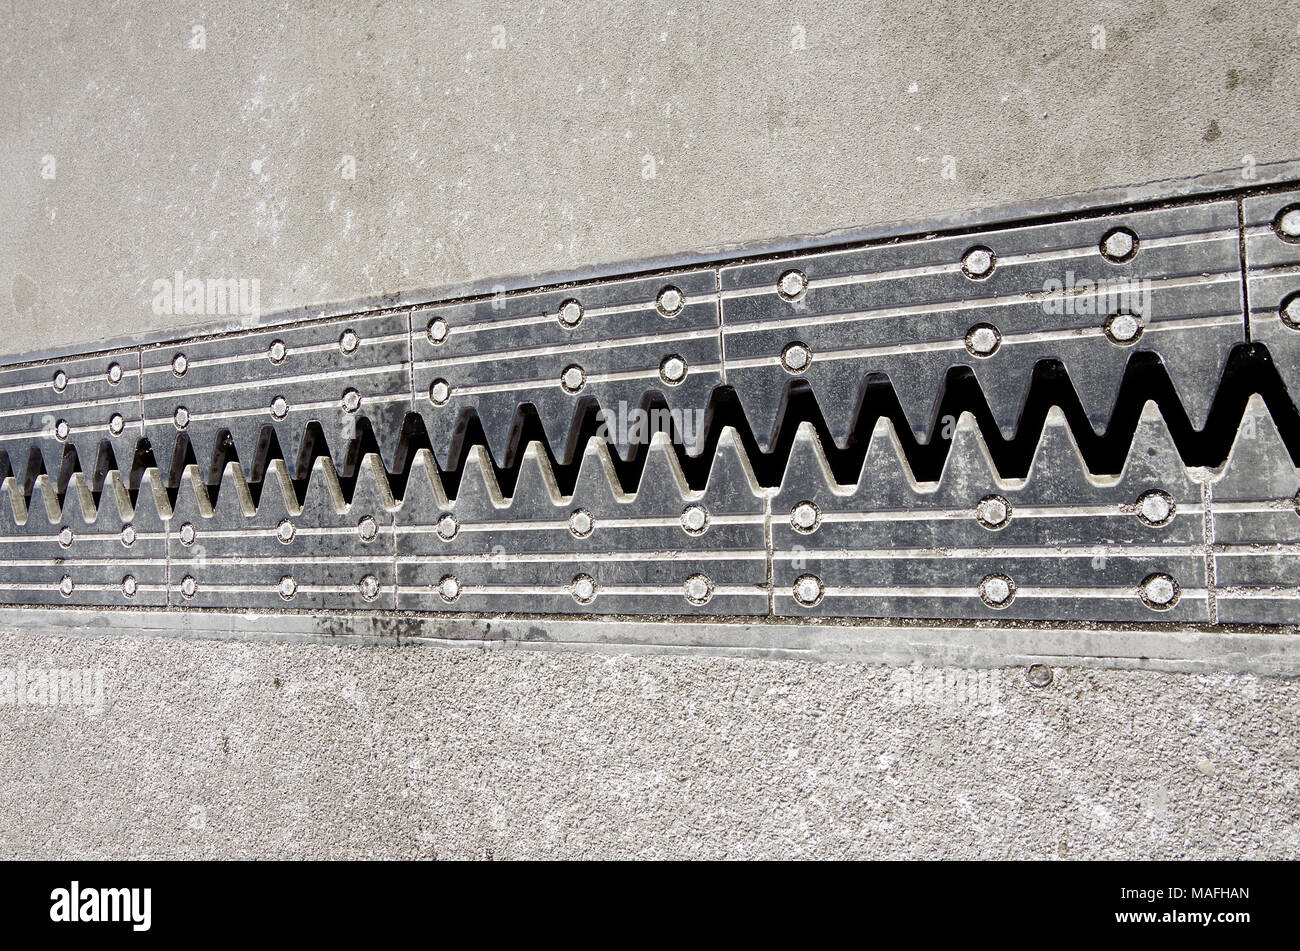 Expansion joint in road bridge open to near it's widest during extremely cold weather, minus 8 degrees C. - Stock Image